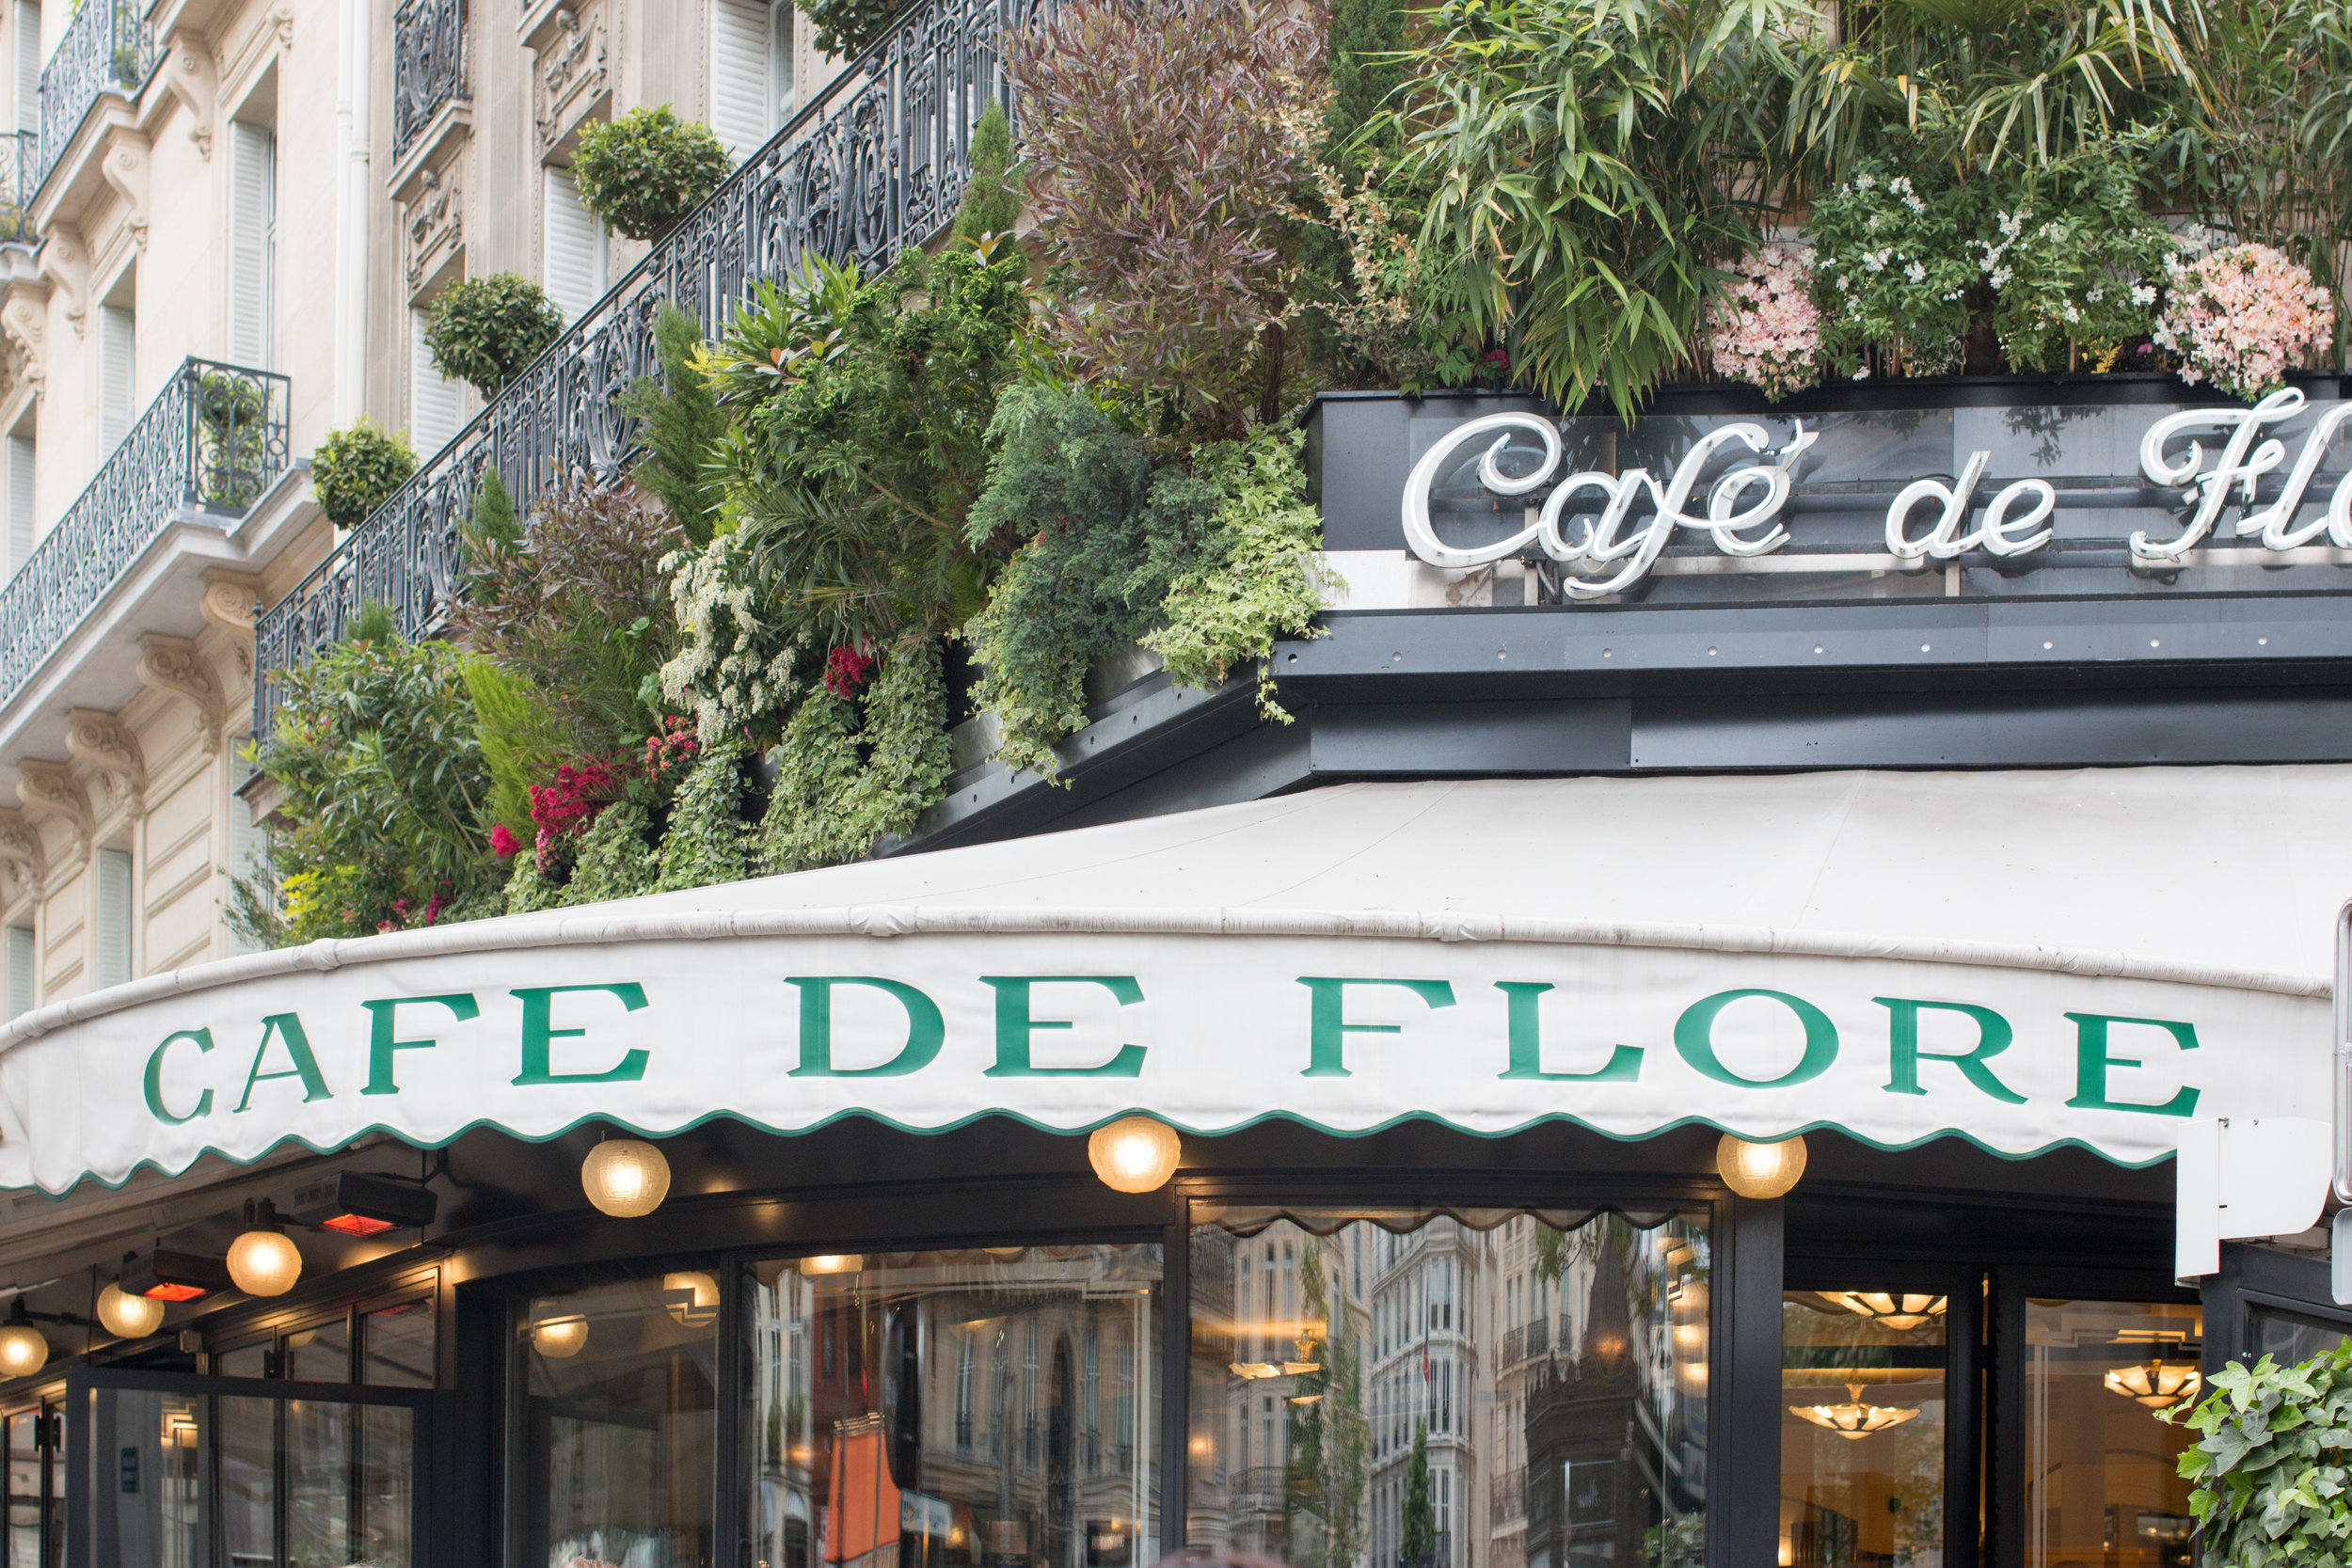 cafe de flore paris classic cafe @rebeccaplotnick